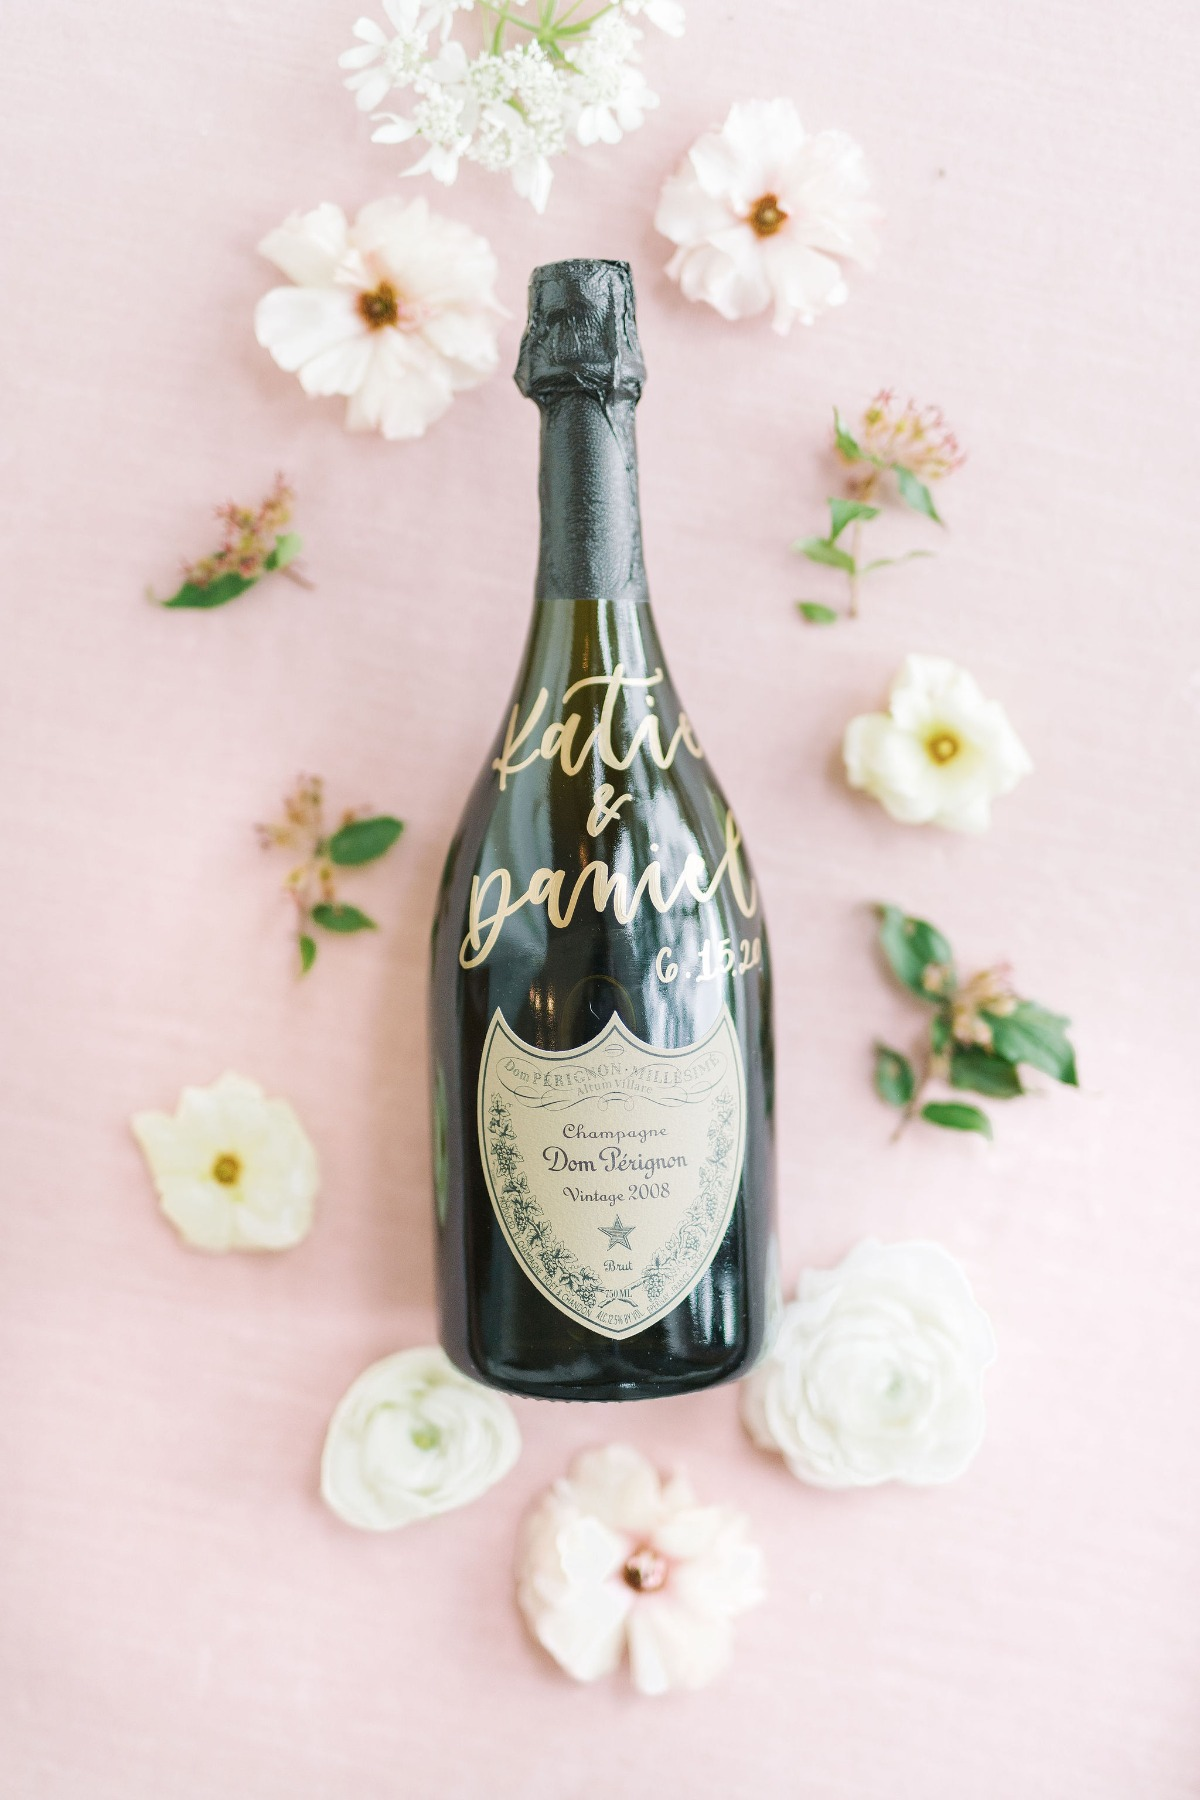 Don Perignon flat lay styling ideas